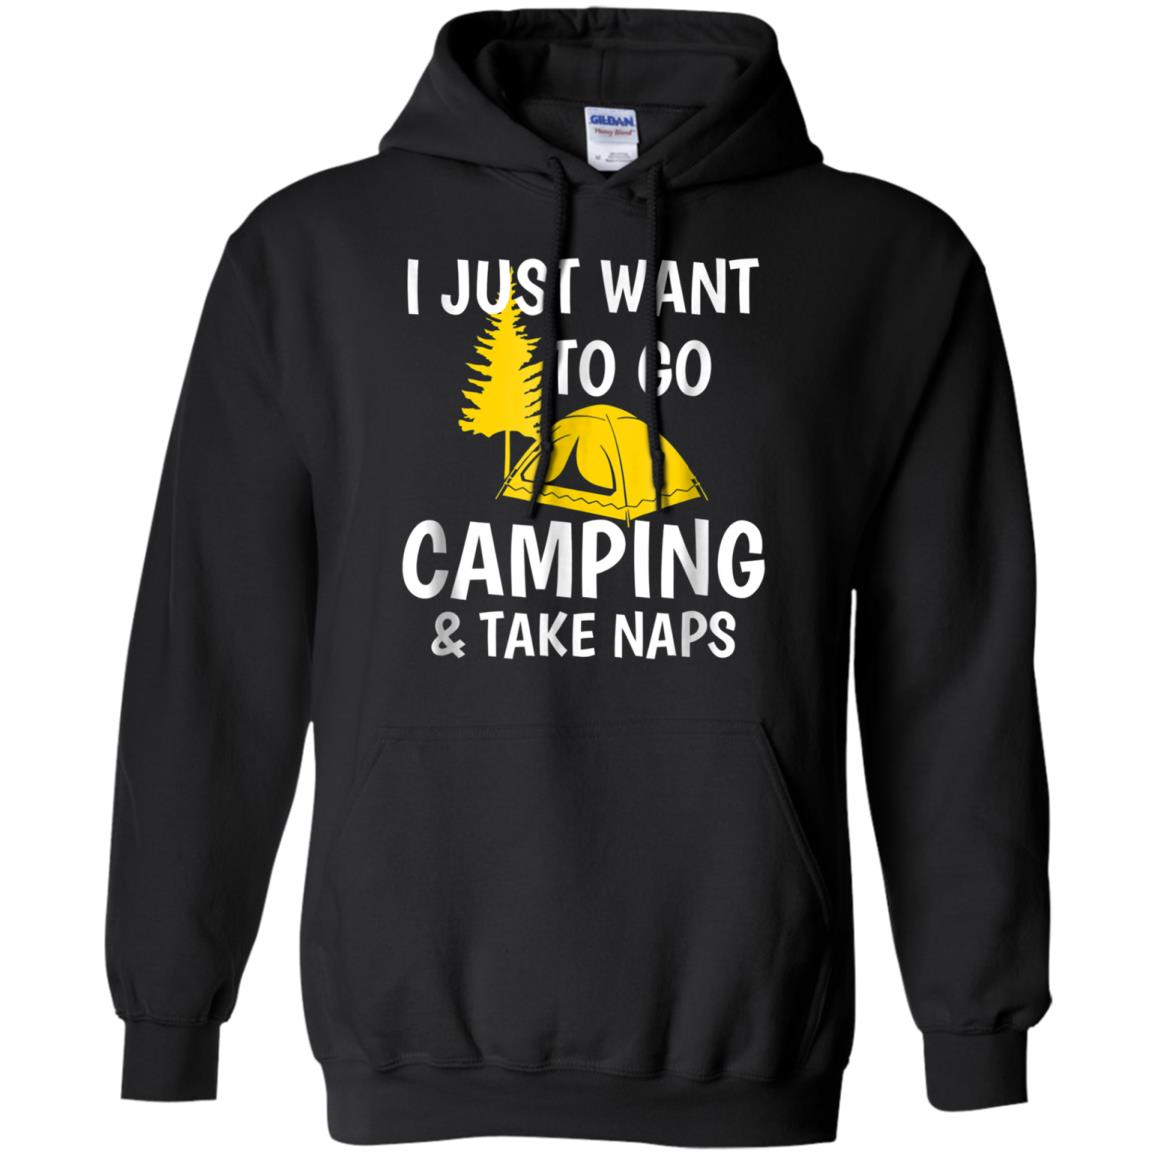 Camp and Nap Outdoors Funny Tshirt For Men and Women